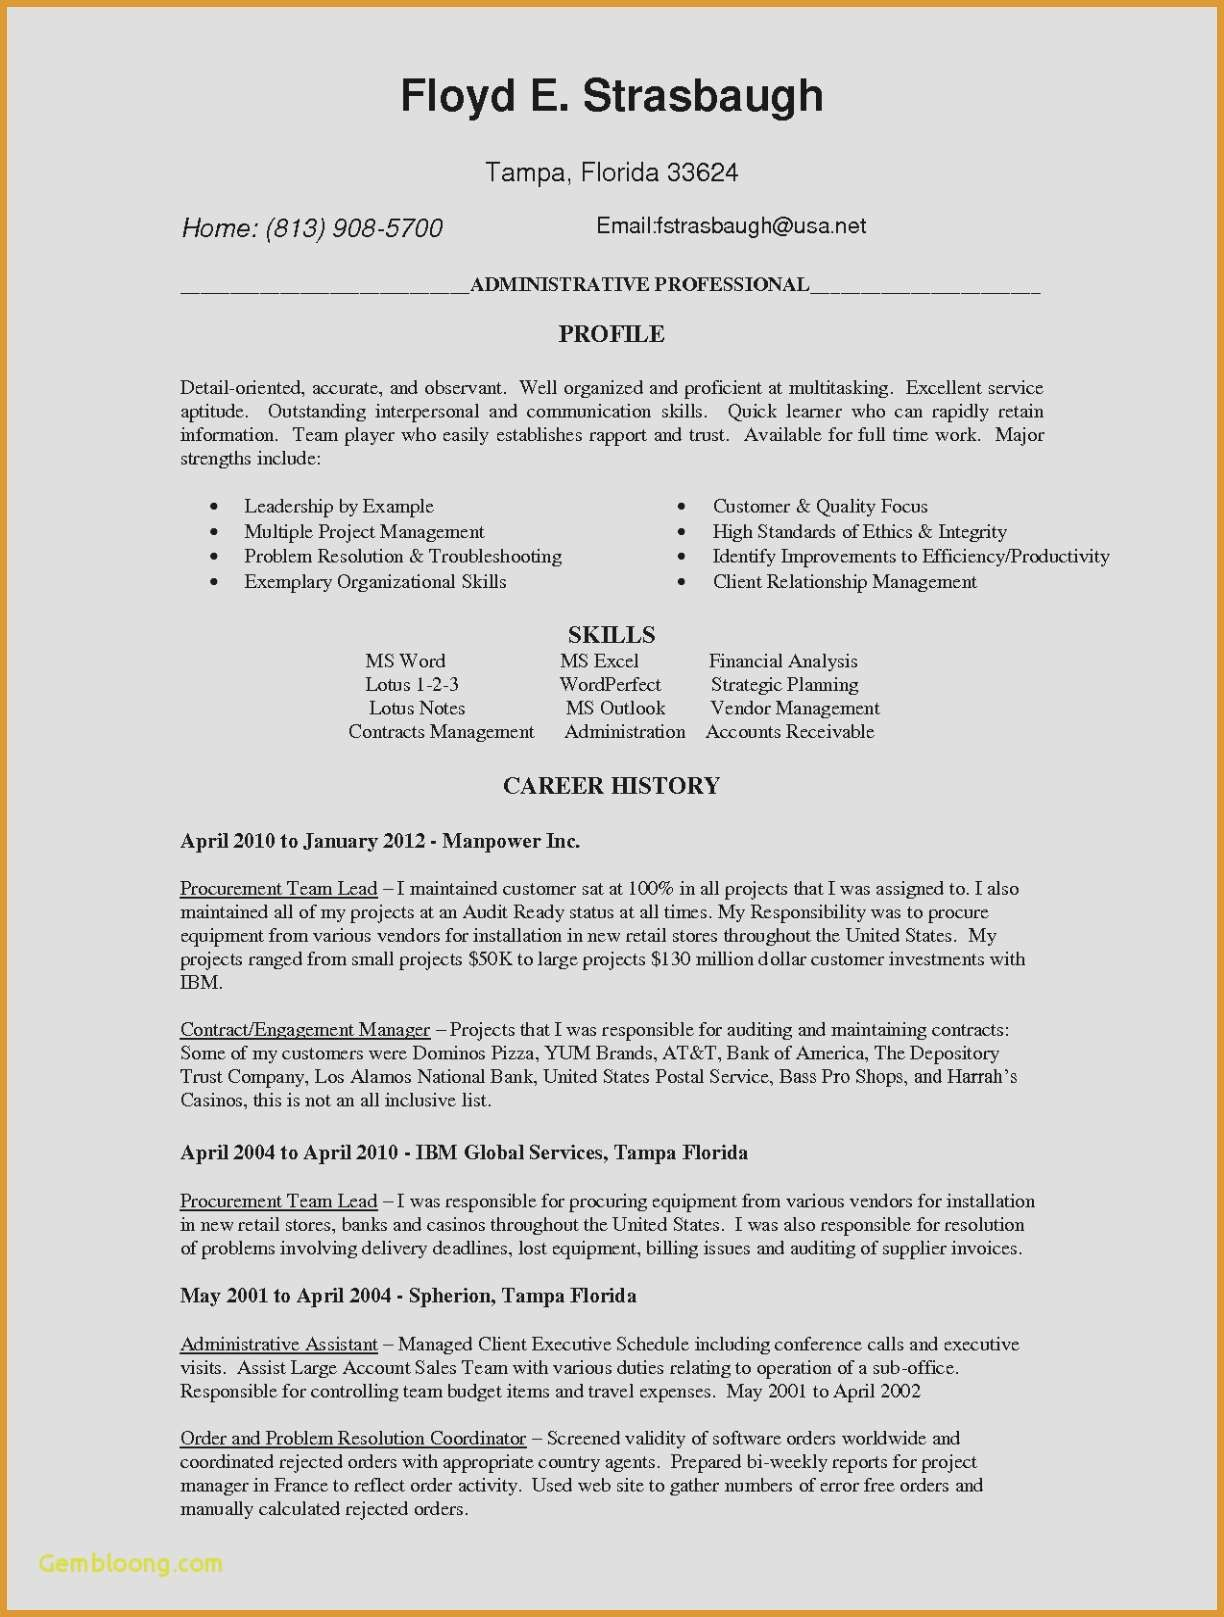 Quick Learner Resume Example - 20 Fast Learner Resume